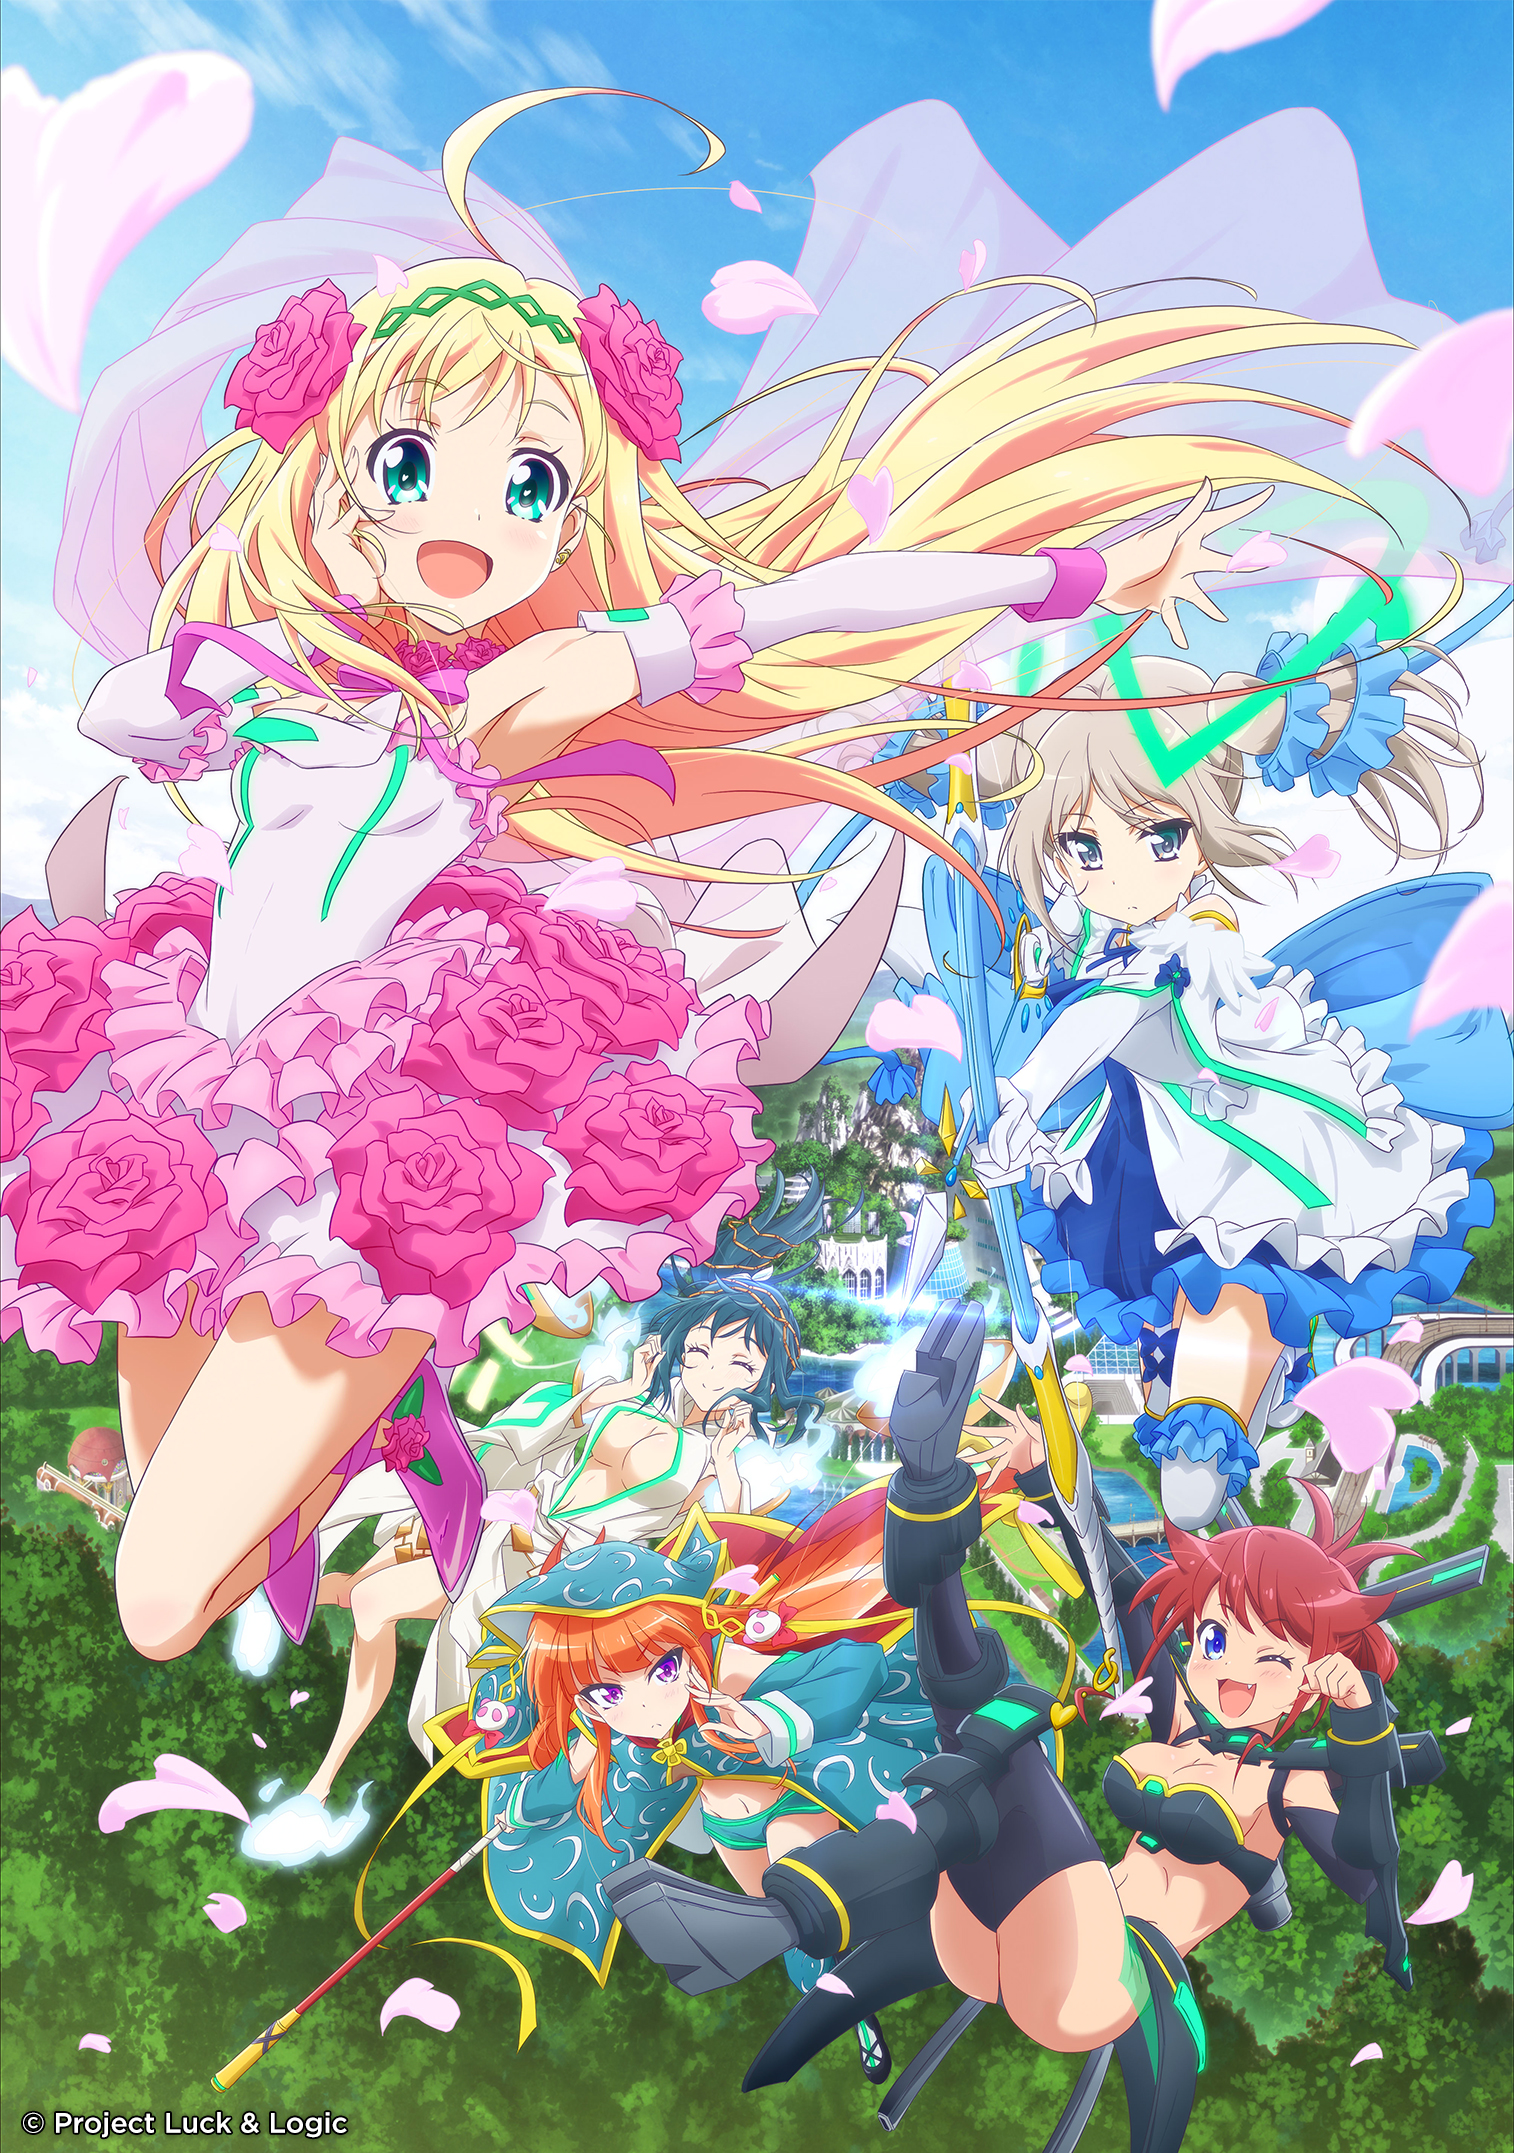 A Whole New Adventure Awaits Anime Fans This March When The Action Fantasy Hina Logic From Luck Debuts On Animax